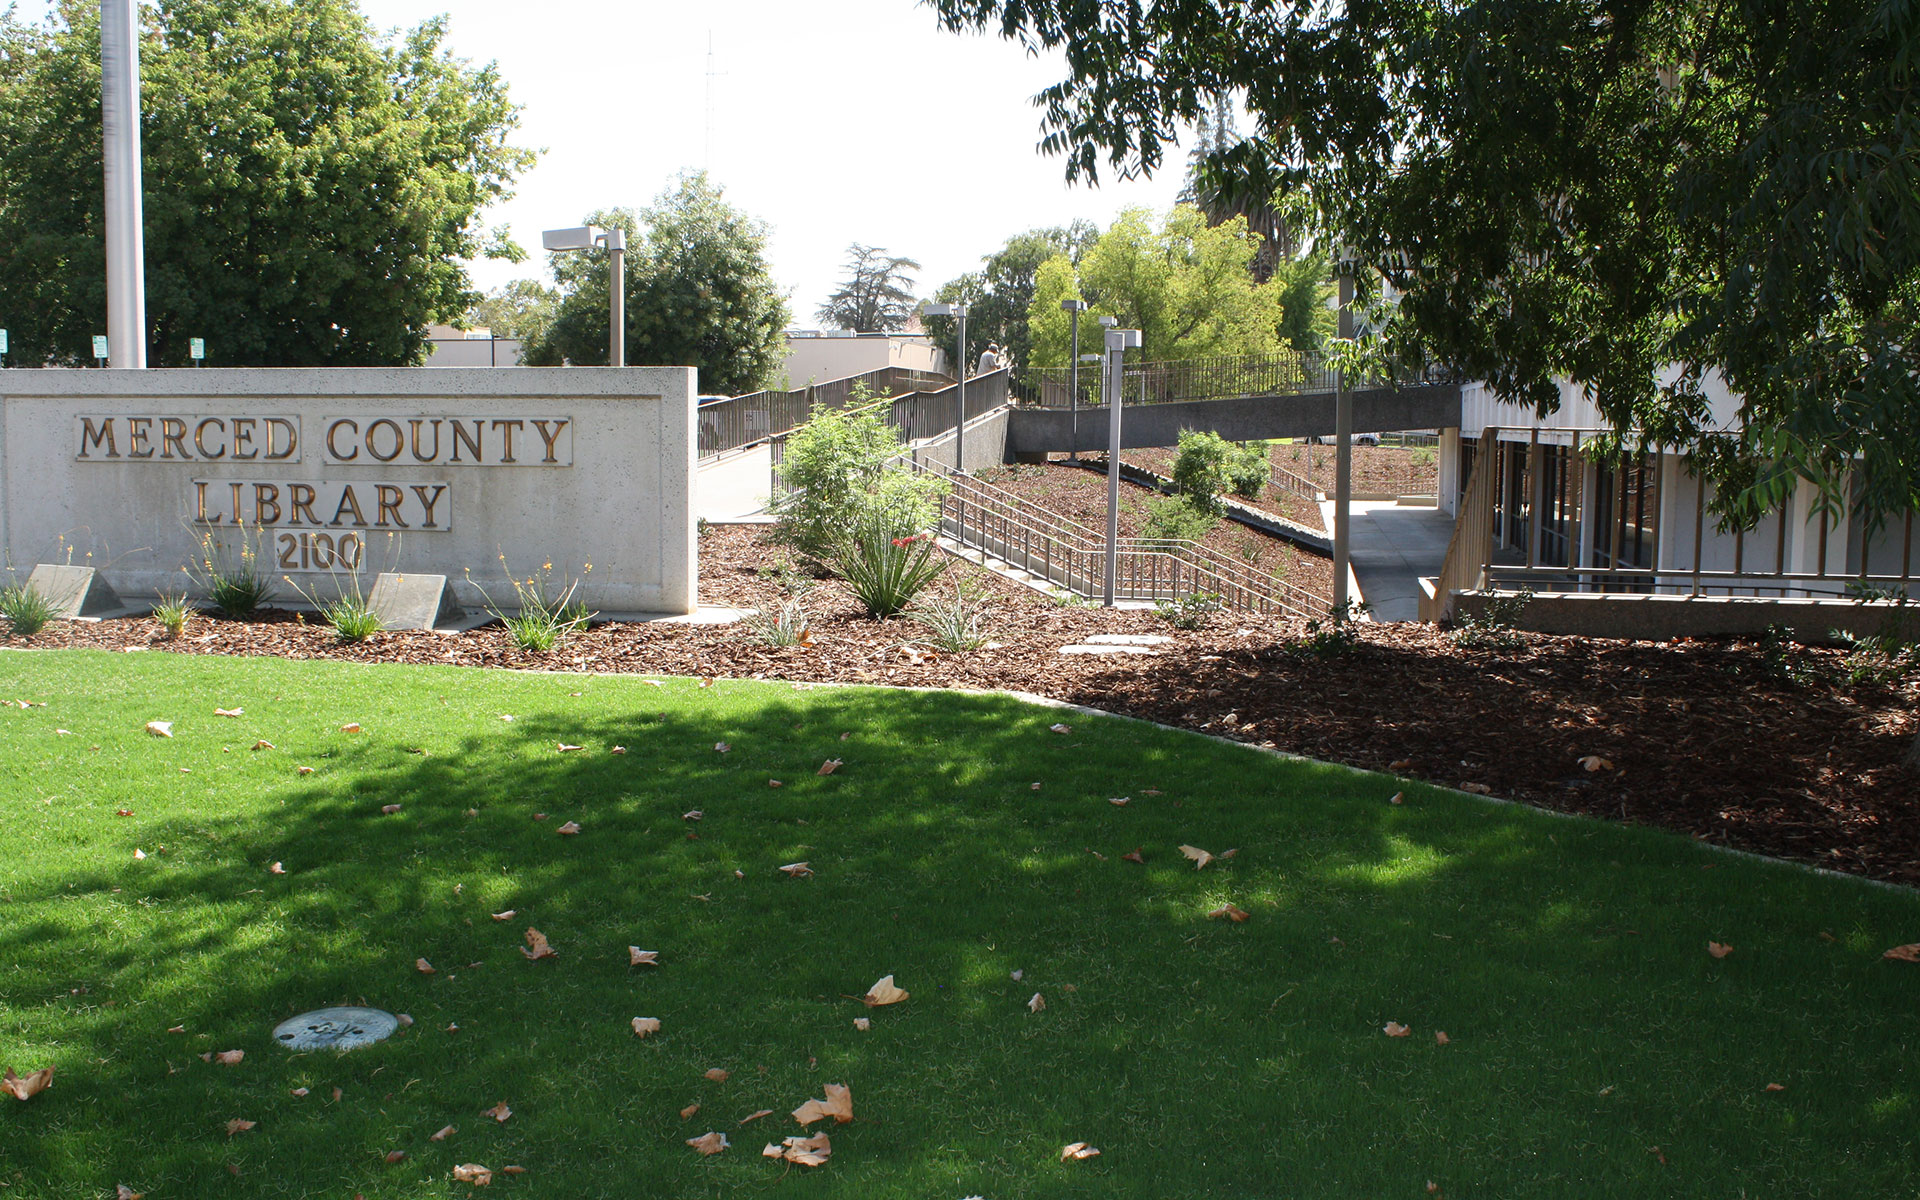 Merced County Library grass and mulch landscaping surrounding building